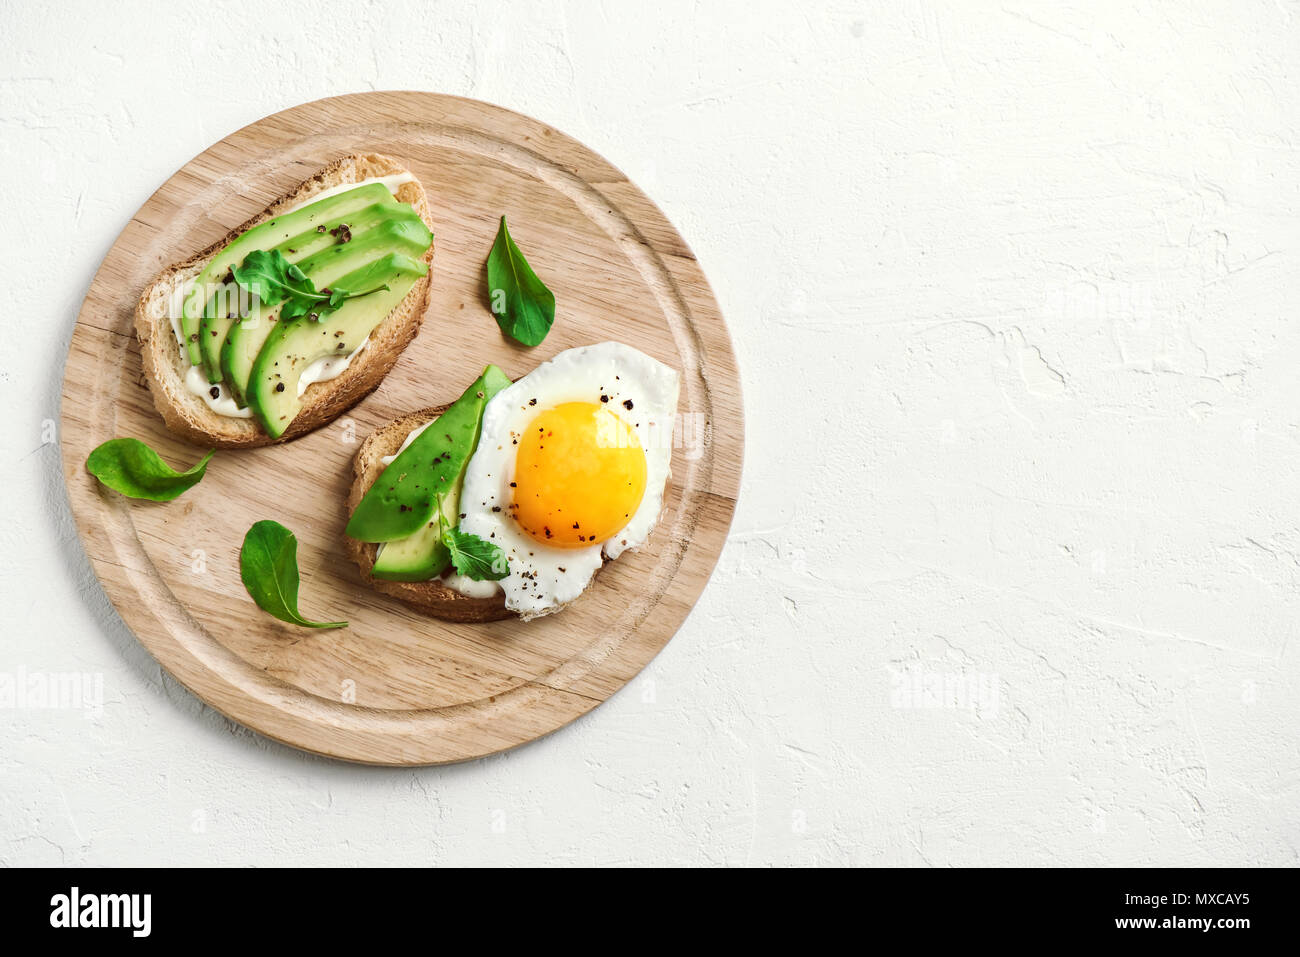 Avocado Sandwich with Fried Egg - sliced avocado and egg on toasted bread for healthy breakfast or snack, copy space. Stock Photo